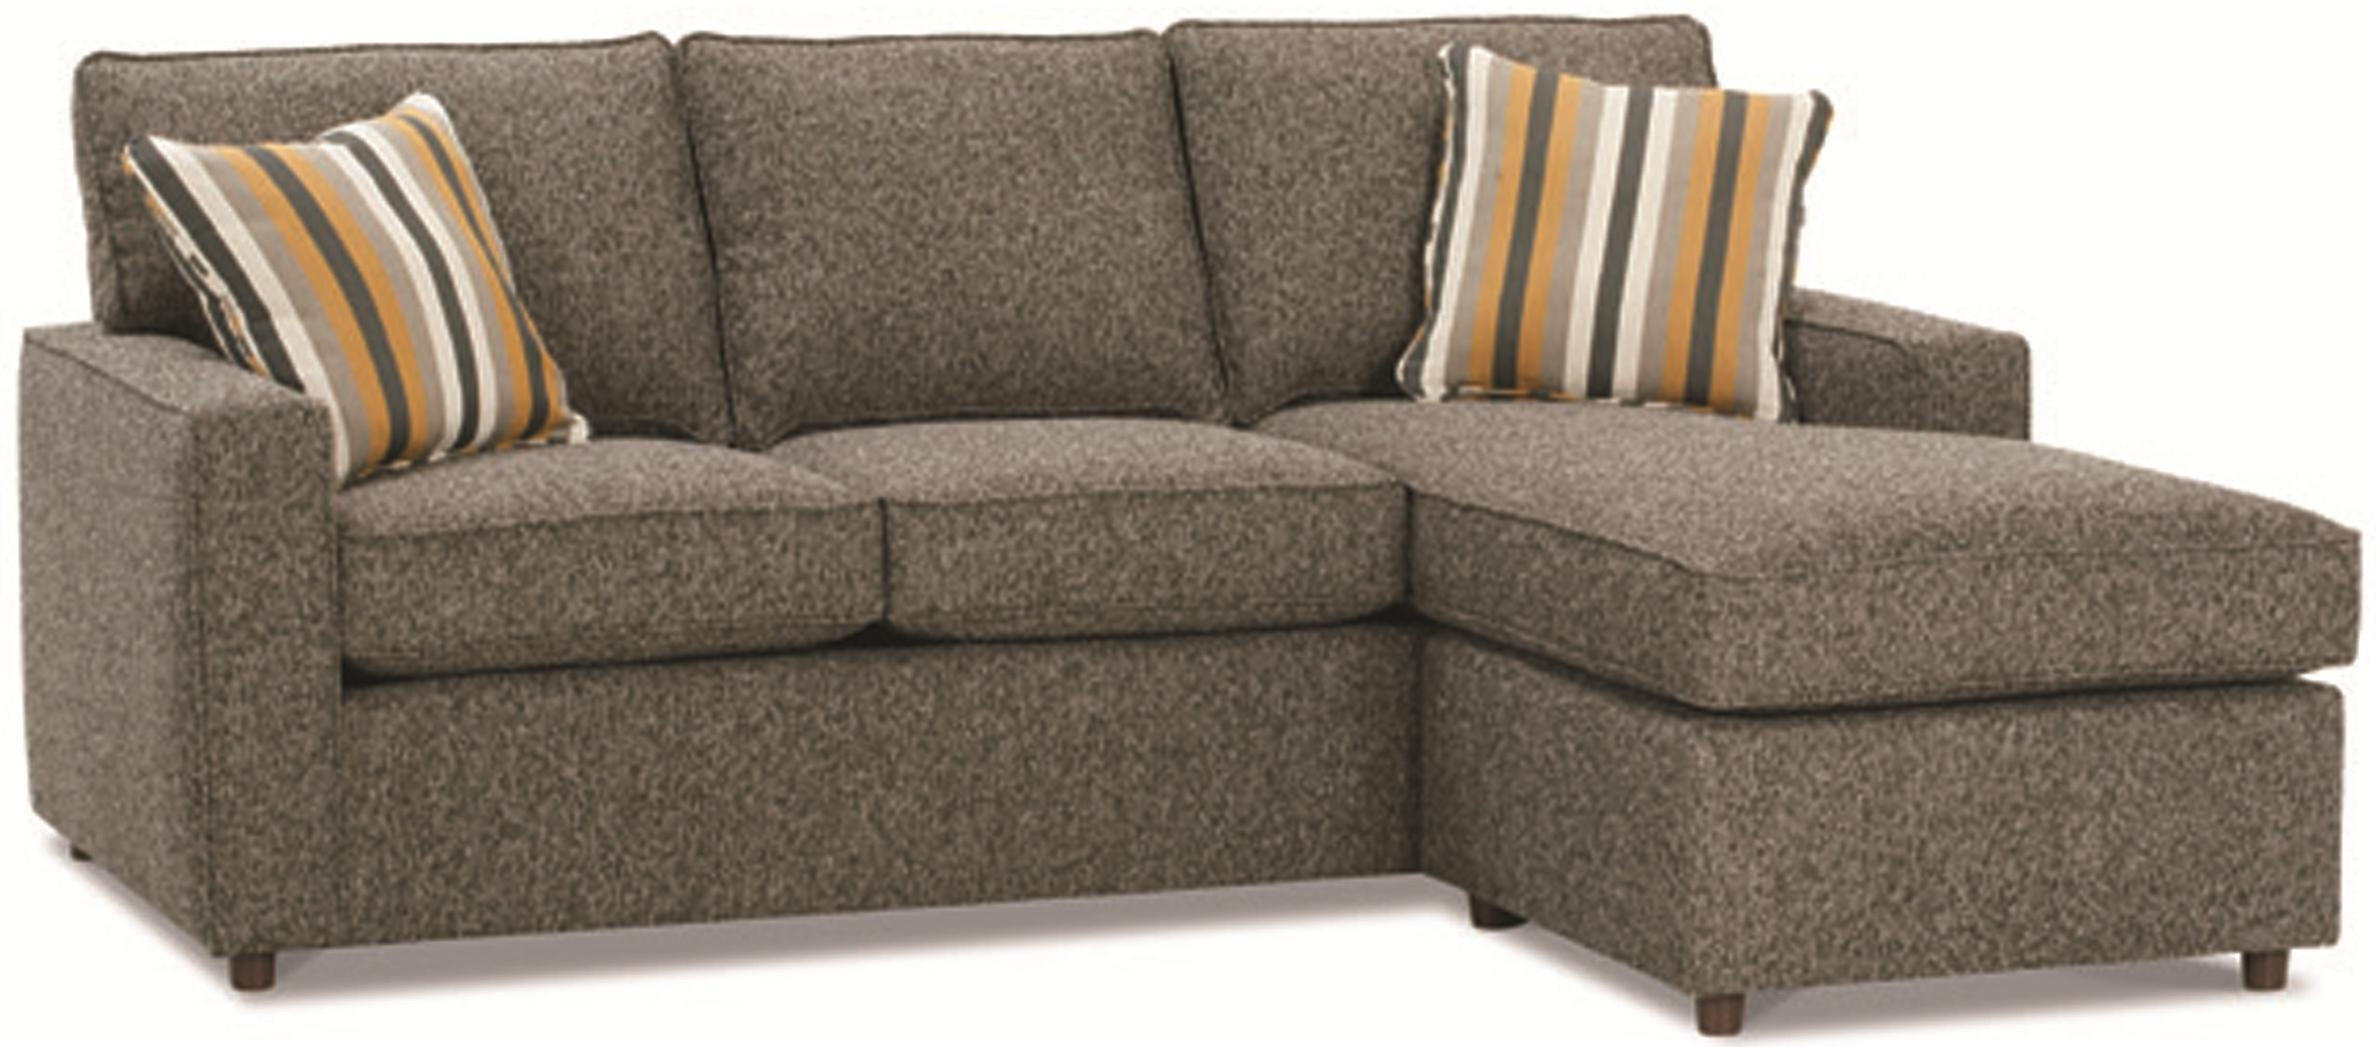 Rowe Monaco Contemporary Sofa With Reversible Chaise Ottoman For Rowe Sectional Sofas (Photo 12 of 20)